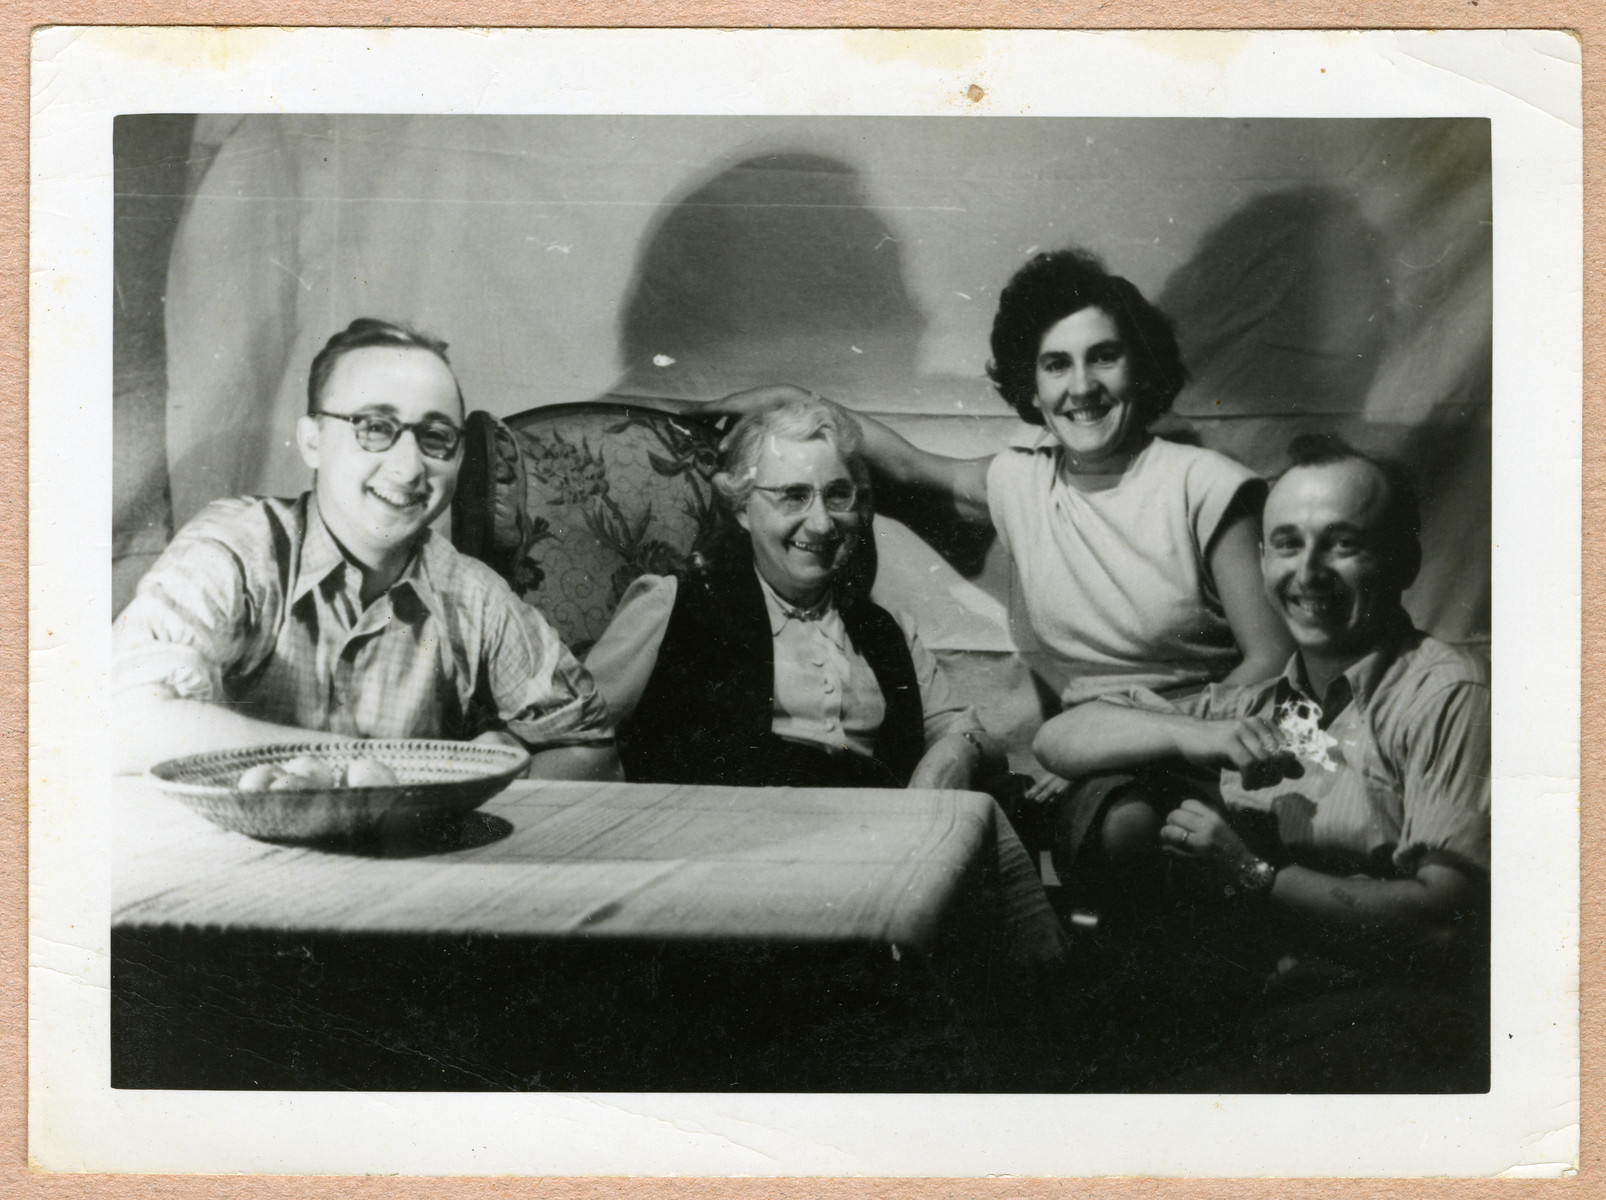 The Feigenbaum family relaxes in their home in Belgium the evening before Margot and Kurt left for the United States.  From left to right are Werner, Clara, Margot, and Kurt Feigenbaum.